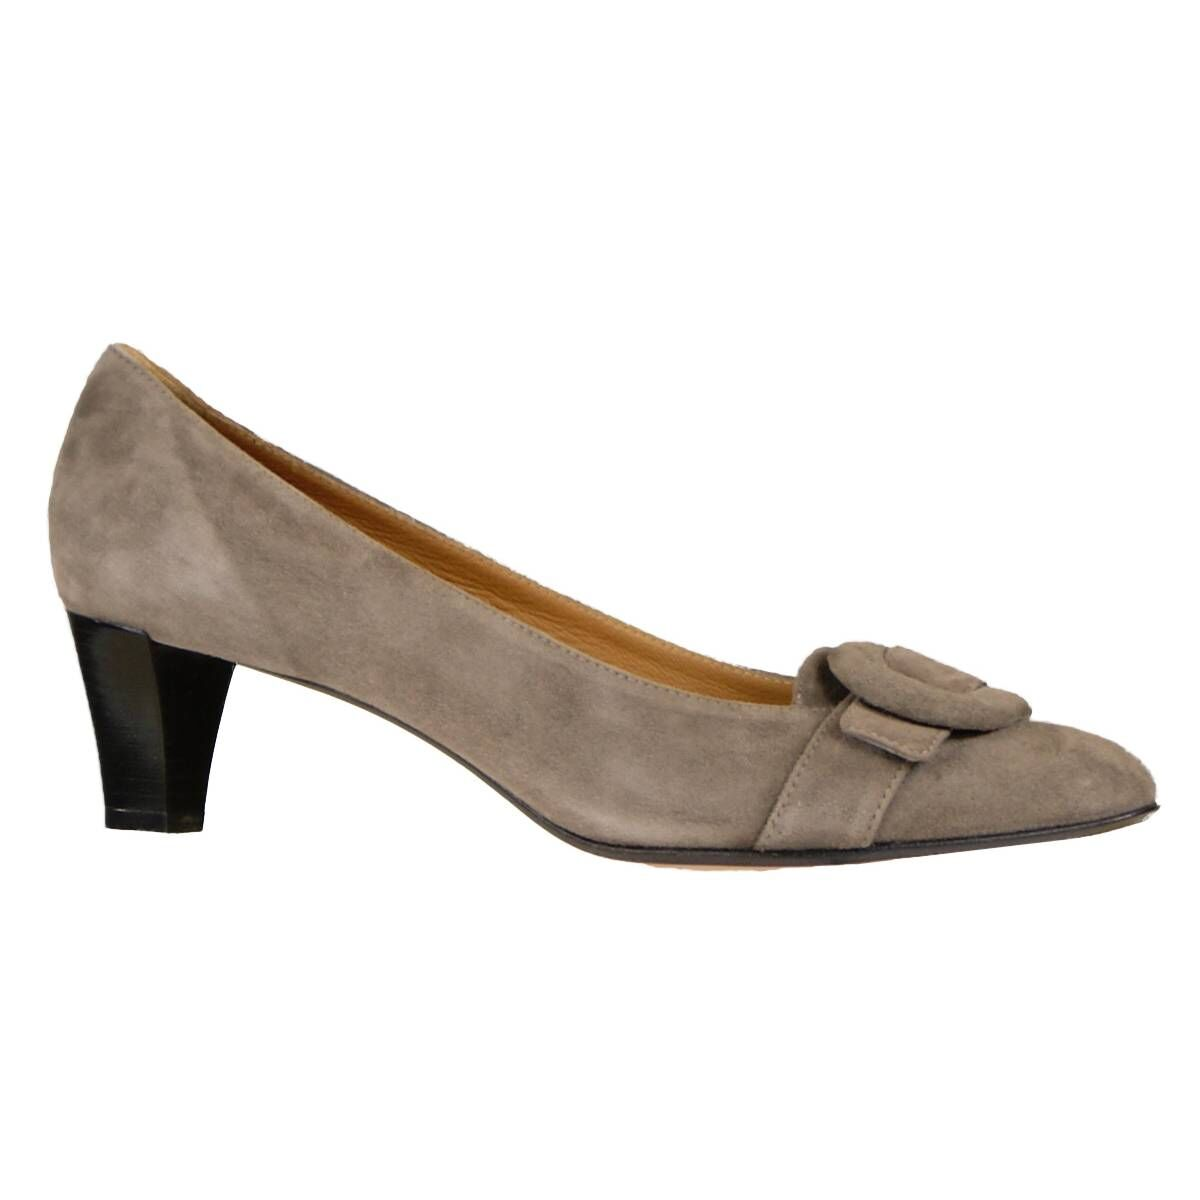 Voltan pumps 4836 684 taupe bei